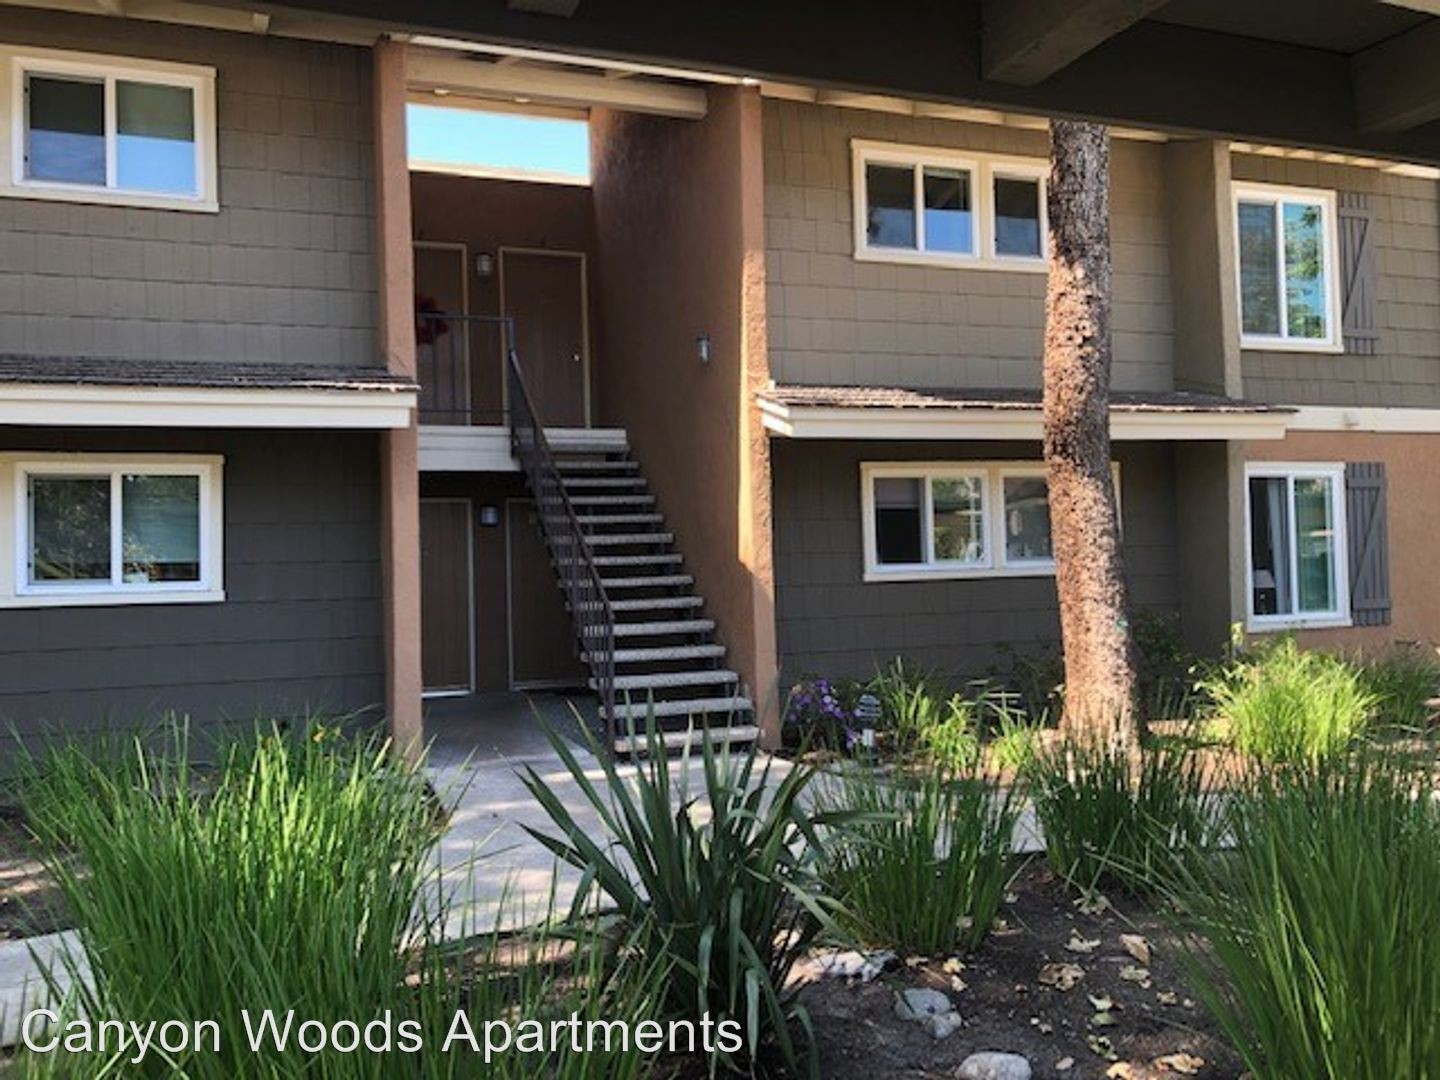 Canyon Woods for rent